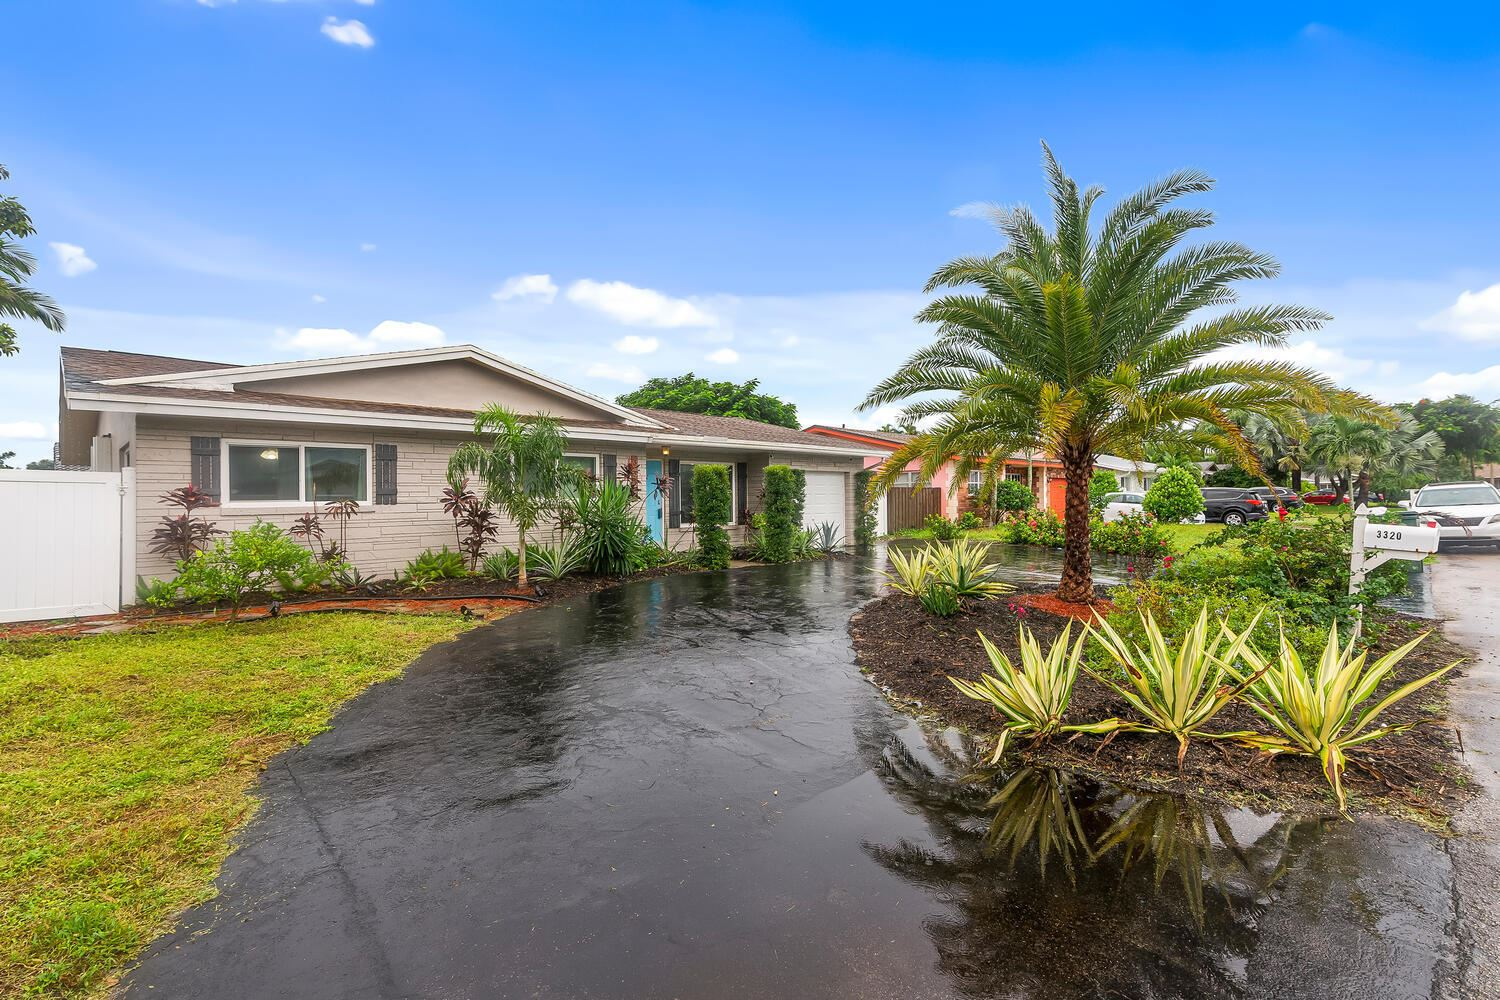 Photo of 3320 NW 67 Street, Fort Lauderdale, FL 33309 (MLS # RX-10657404)